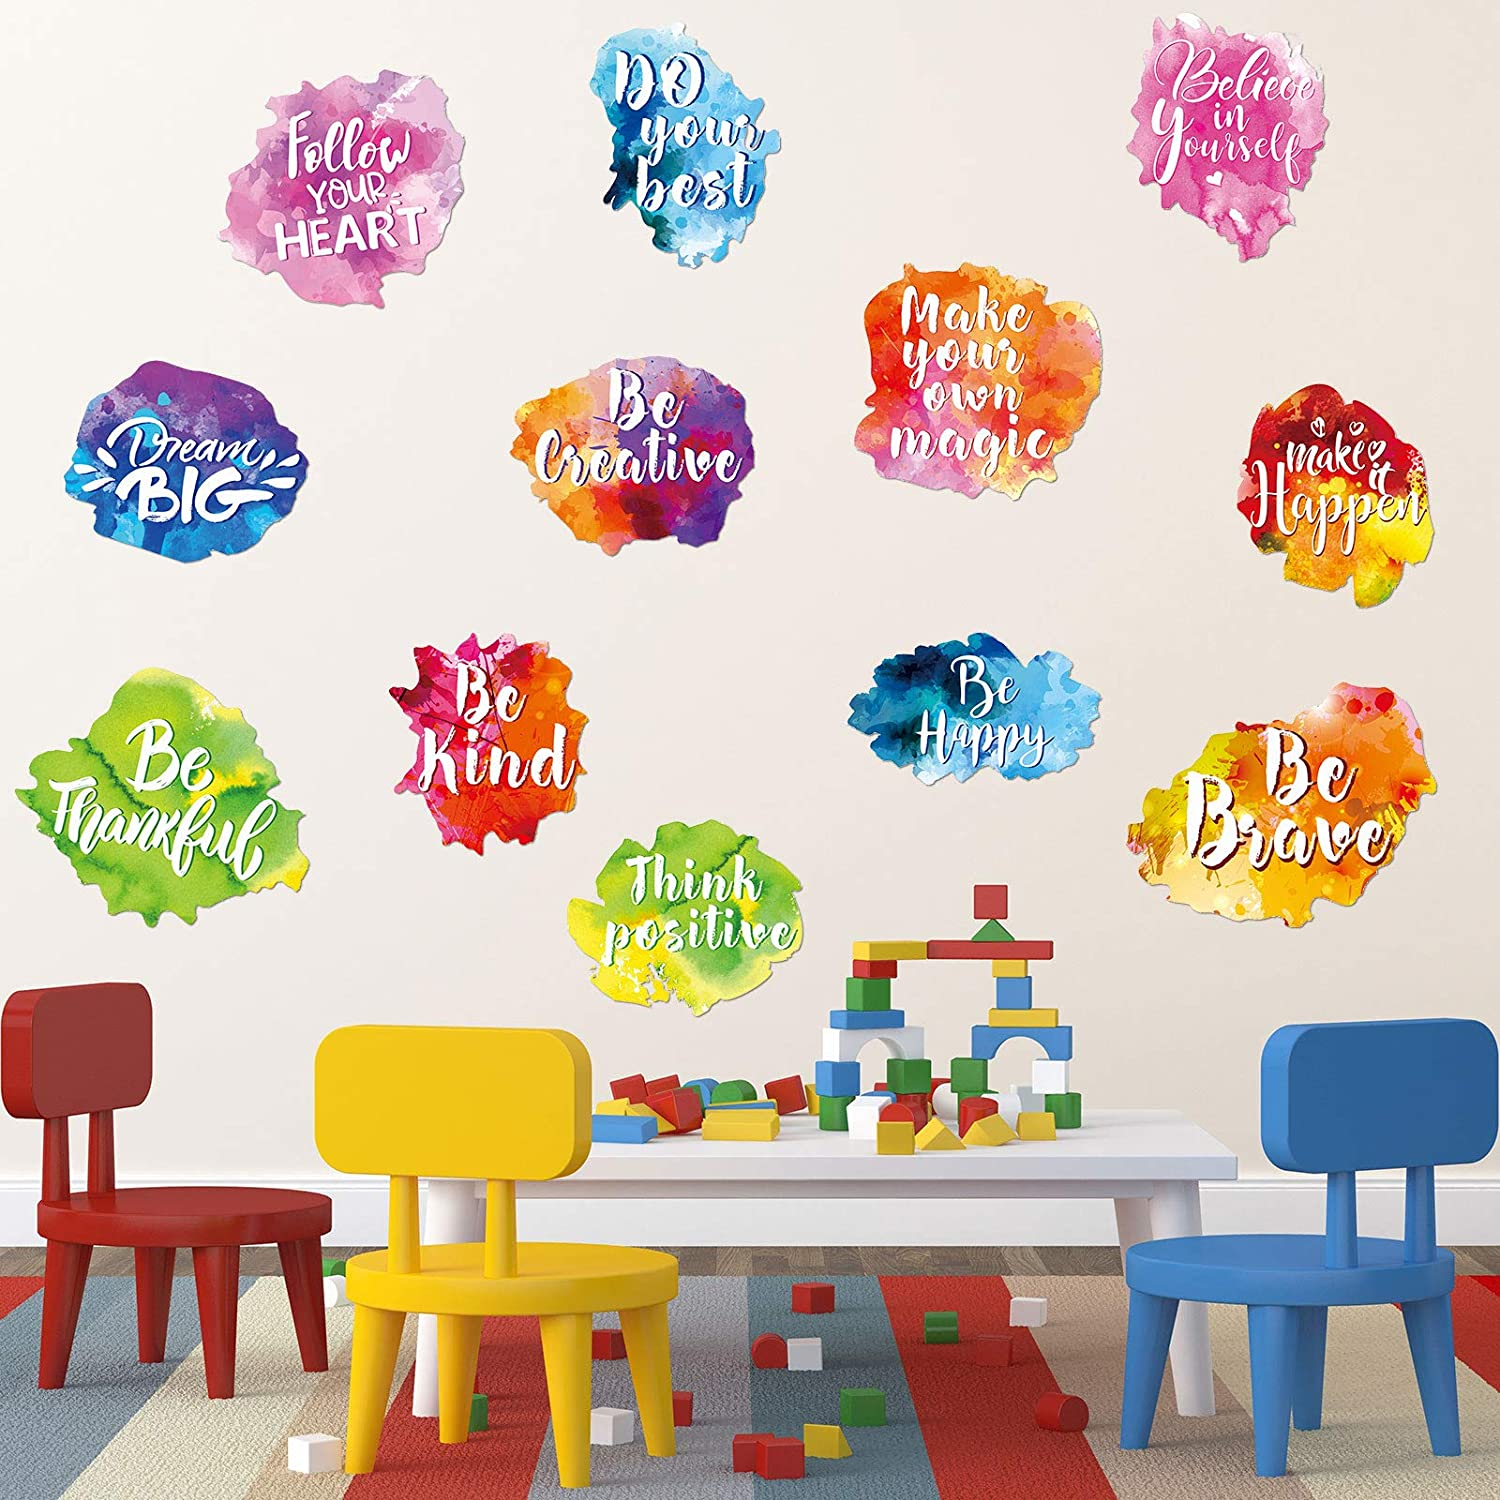 6 Pieces Colorful Inspirational Wall Decal Watercolor Inspirational Quote Wall Sticker Motivational Lettering Sticker for Home Bedroom Bathroom Kitchen Classroom Playroom Kids Decor